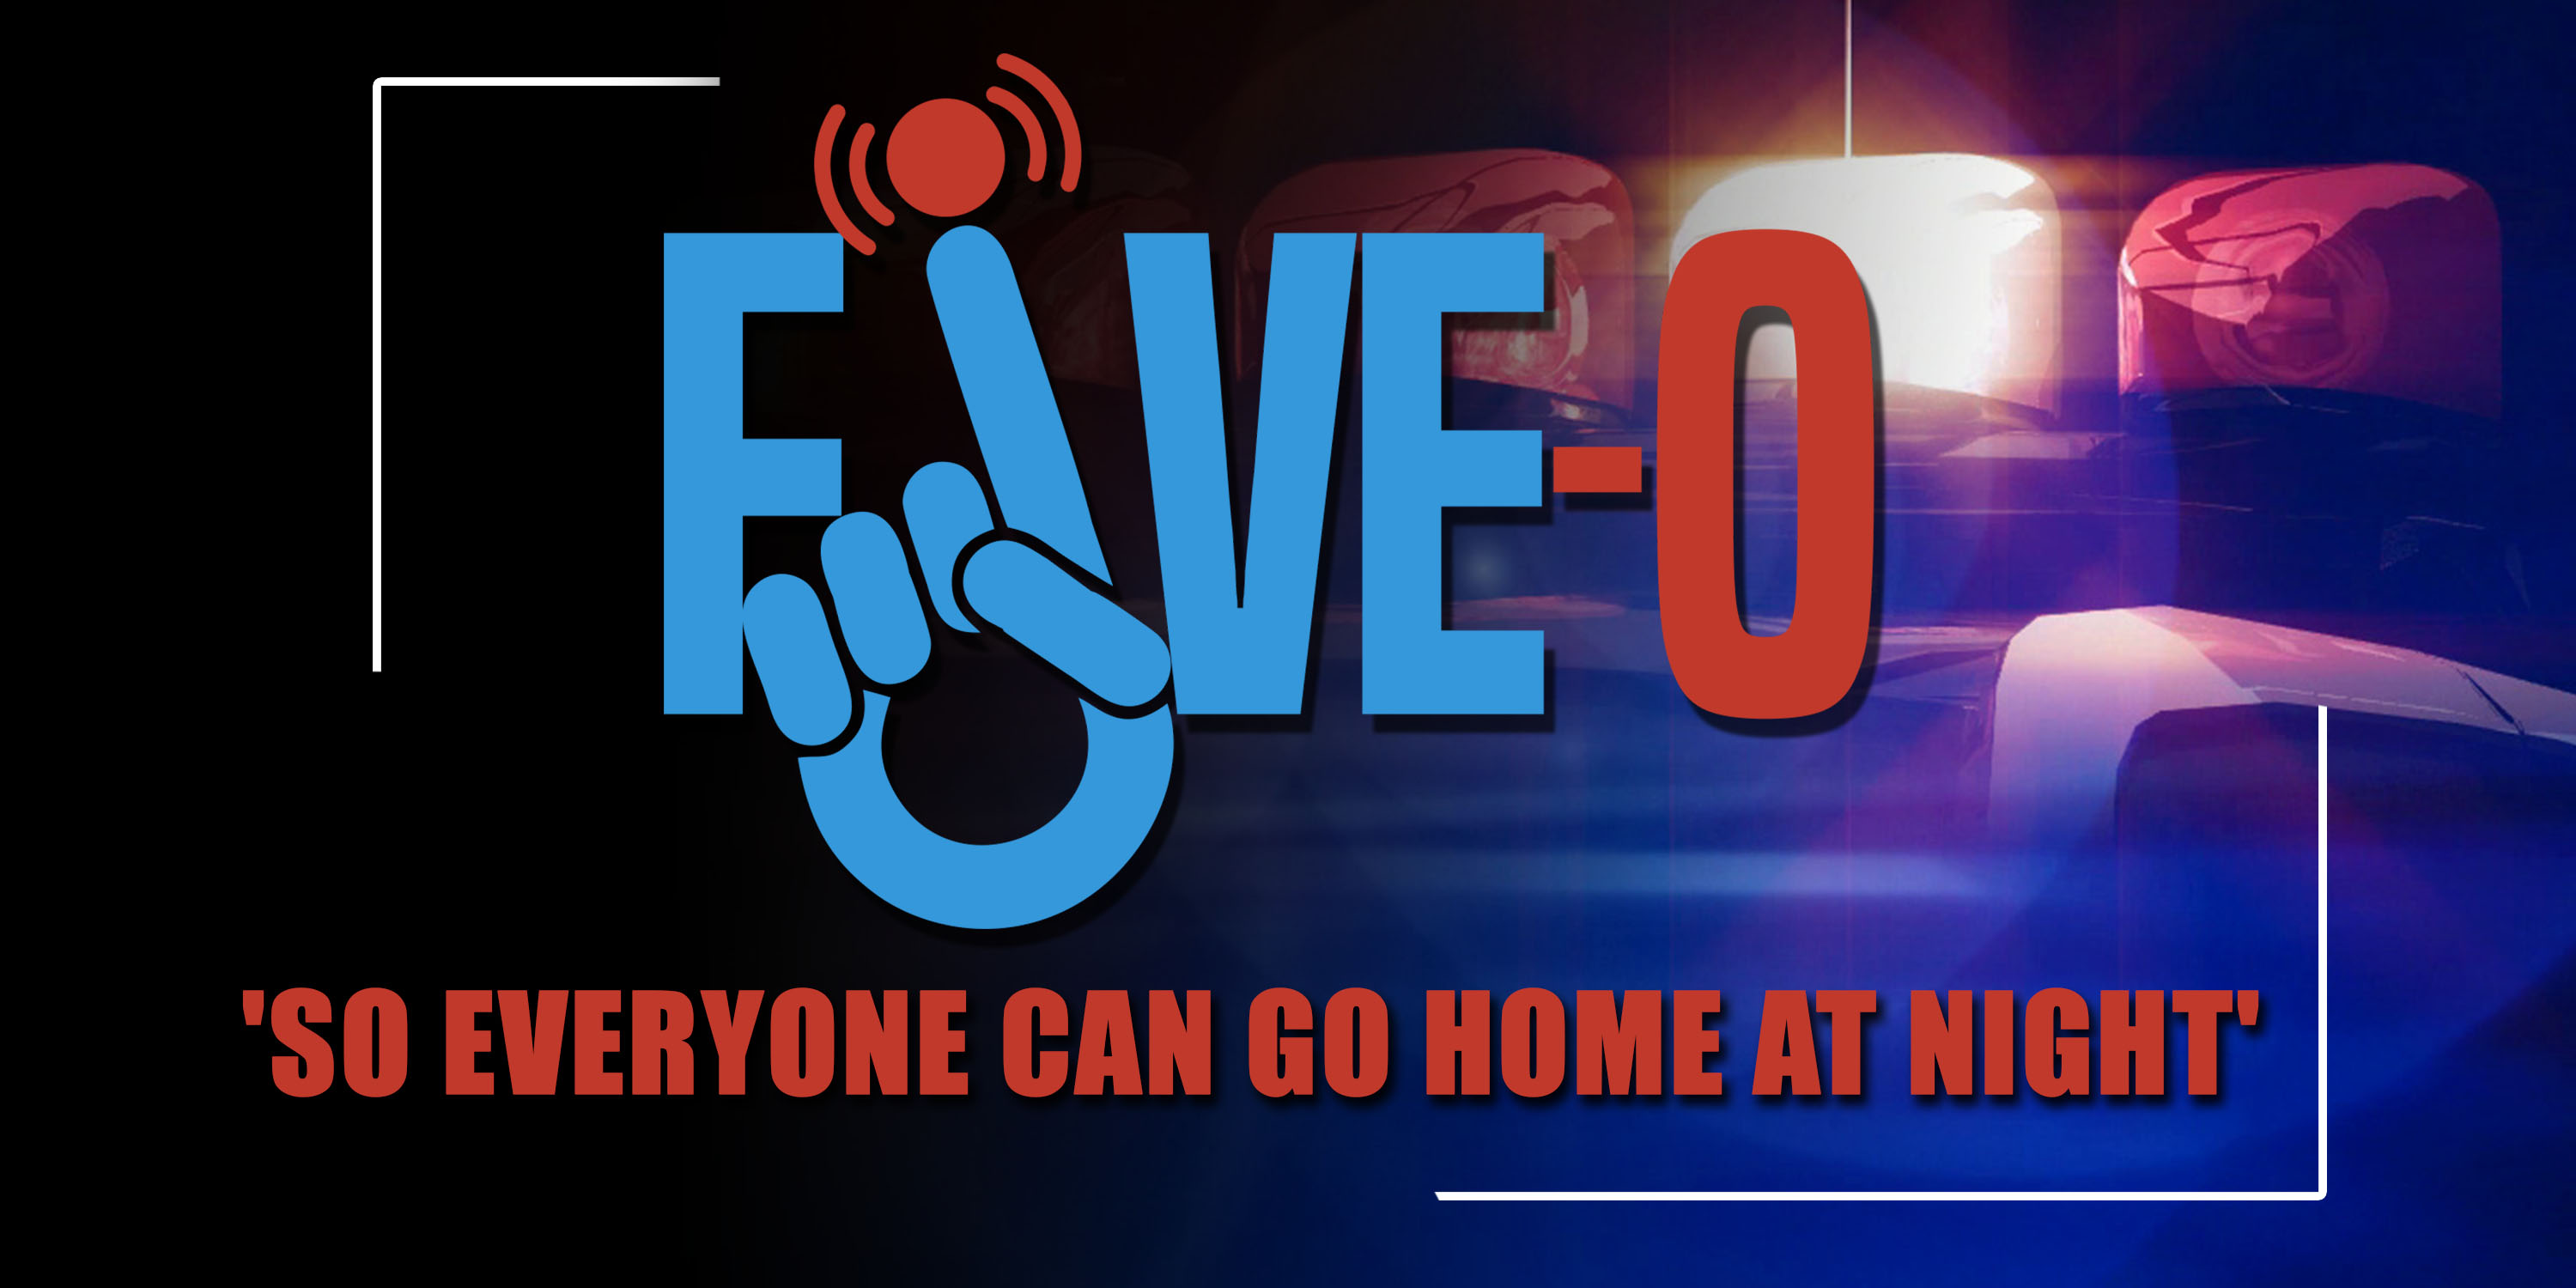 To 10 reasons to download the Five-O app